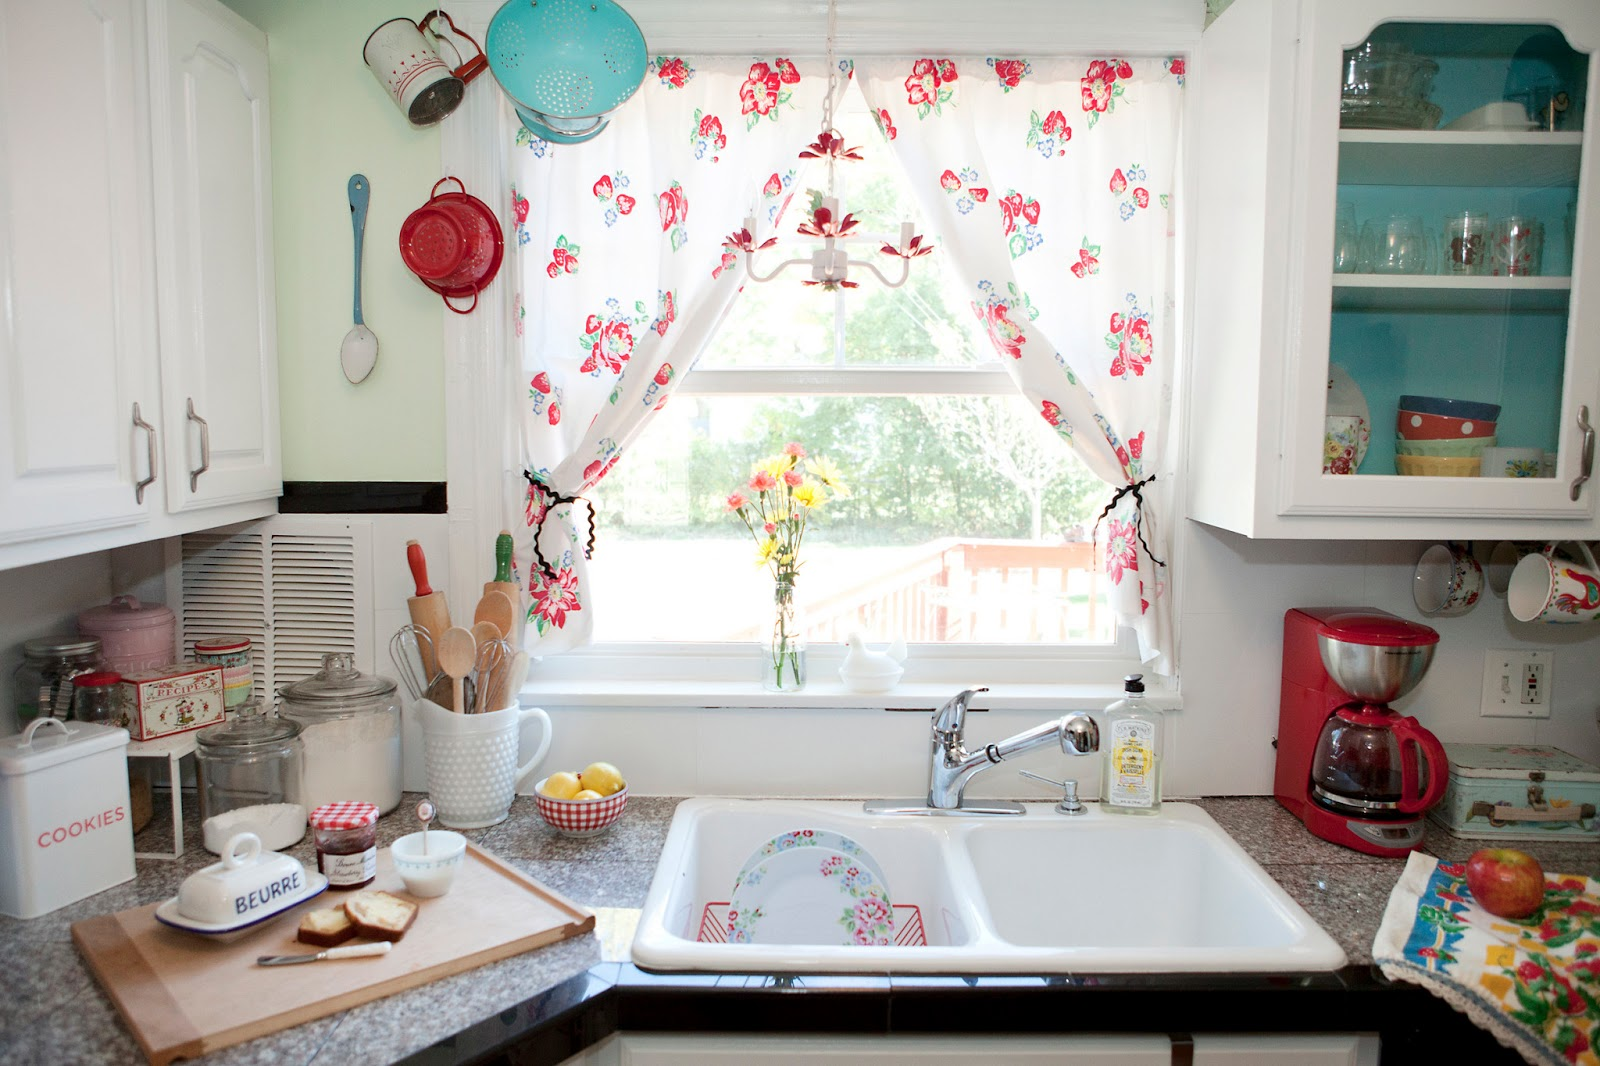 Vintage White Kitchen Window Curtains In Small Kitchen With White Sink And  Grey Granite Countertop